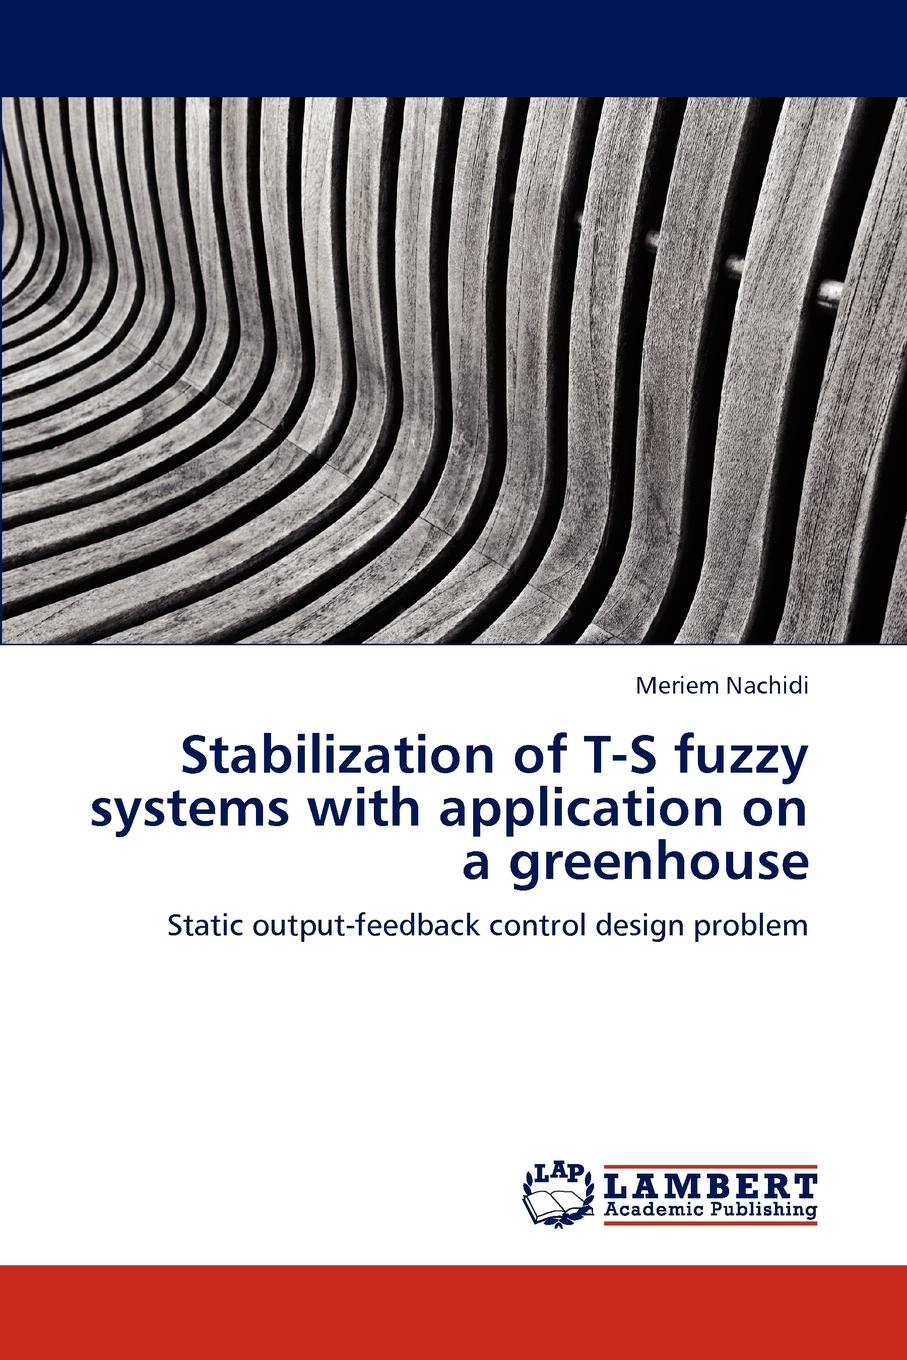 Meriem Nachidi Stabilization of T-S fuzzy systems with application on a greenhouse laplante phillip a real time systems design and analysis tools for the practitioner